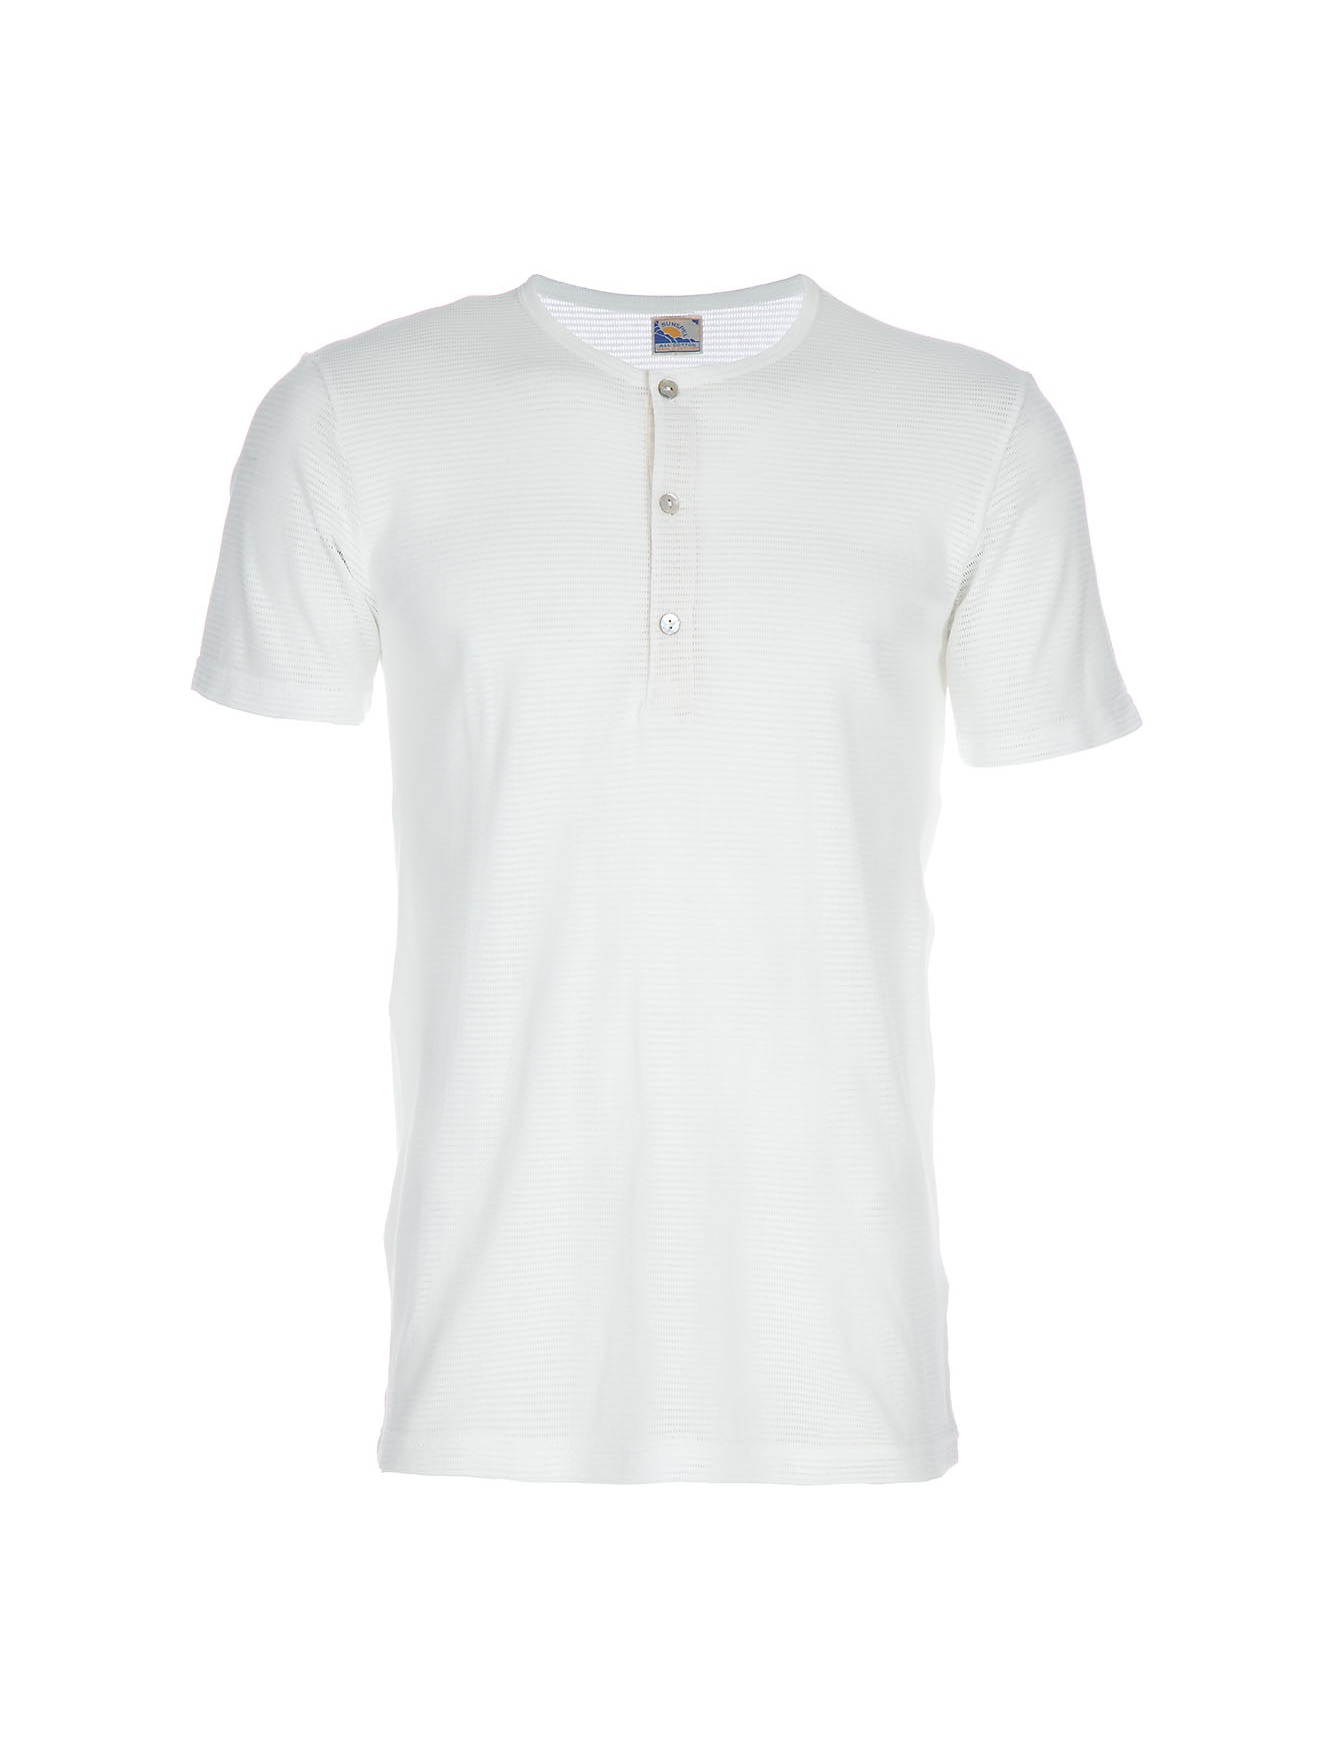 White Button Up T Shirt | Is Shirt